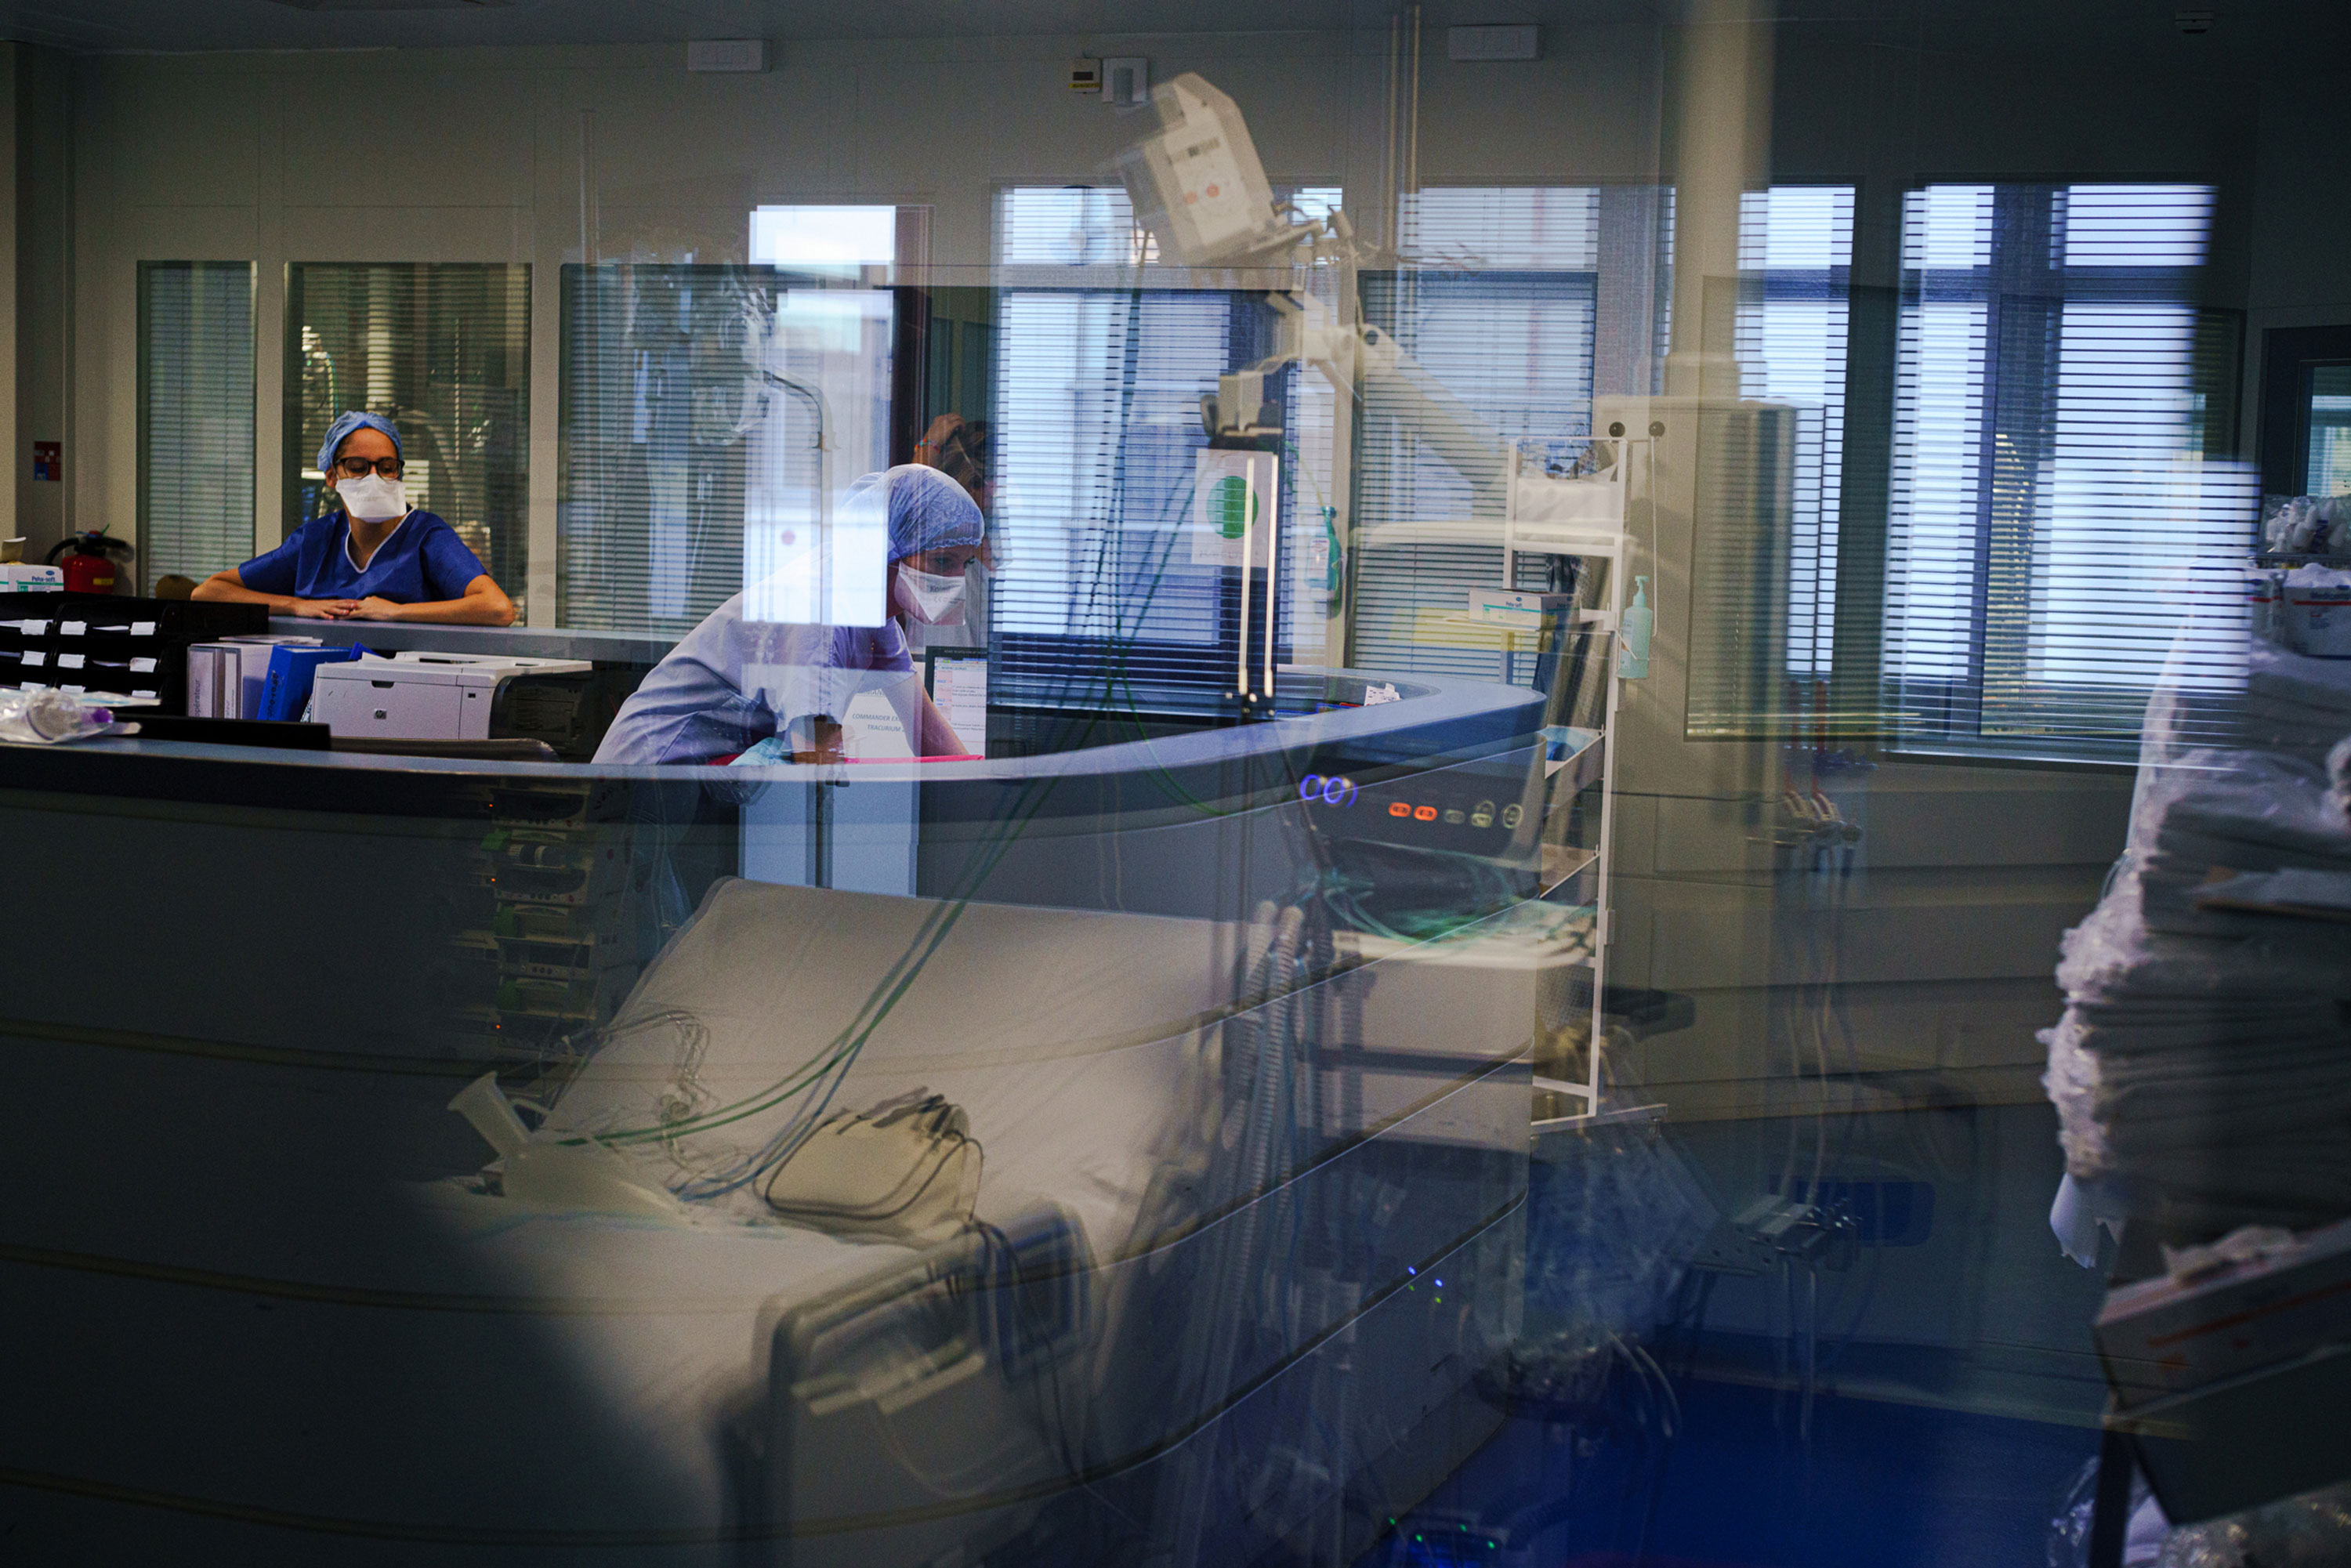 Healthcare workers in Saint Joseph hospital's intensive care unit in Marseille, France, on November 20.